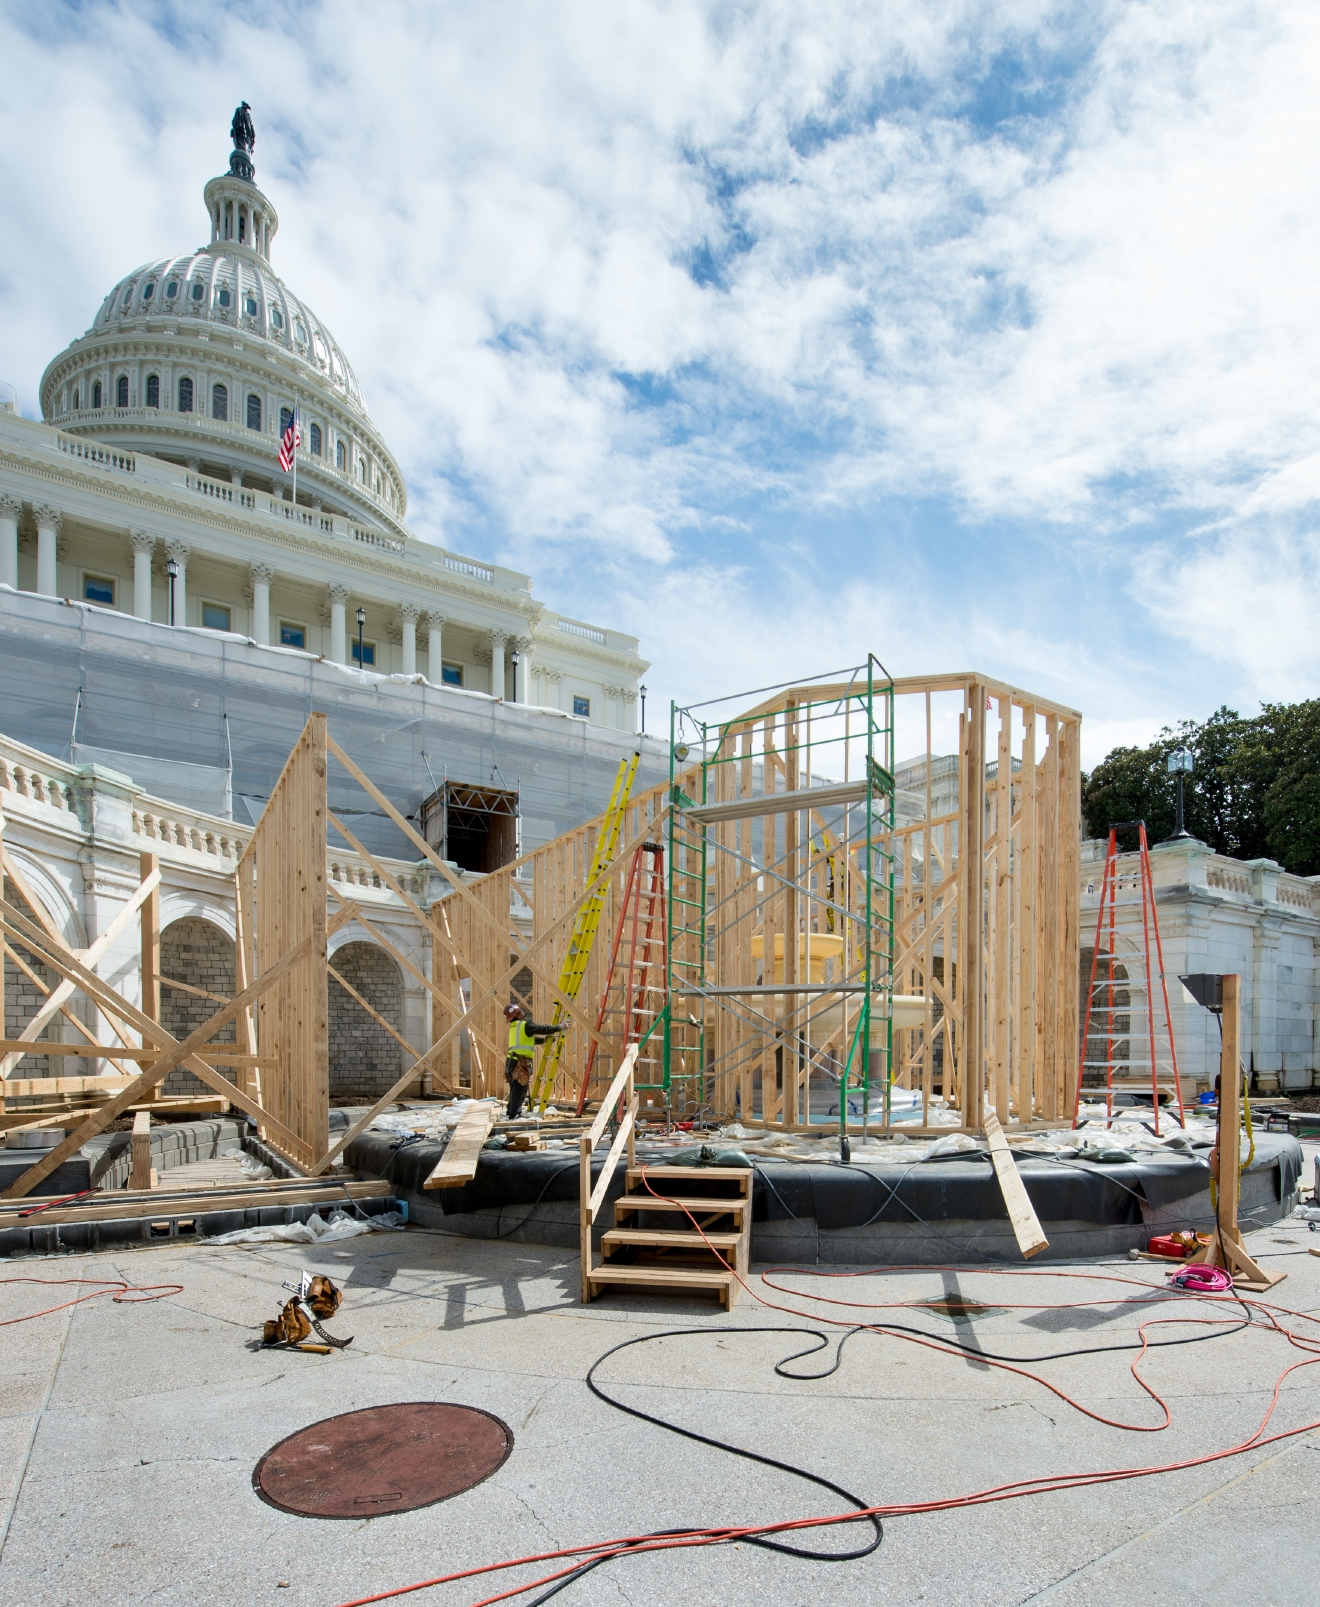 Construction on the 2017 Inaugural Platform is underway. (Joint Congressional Committee on Inaugural Ceremonies)